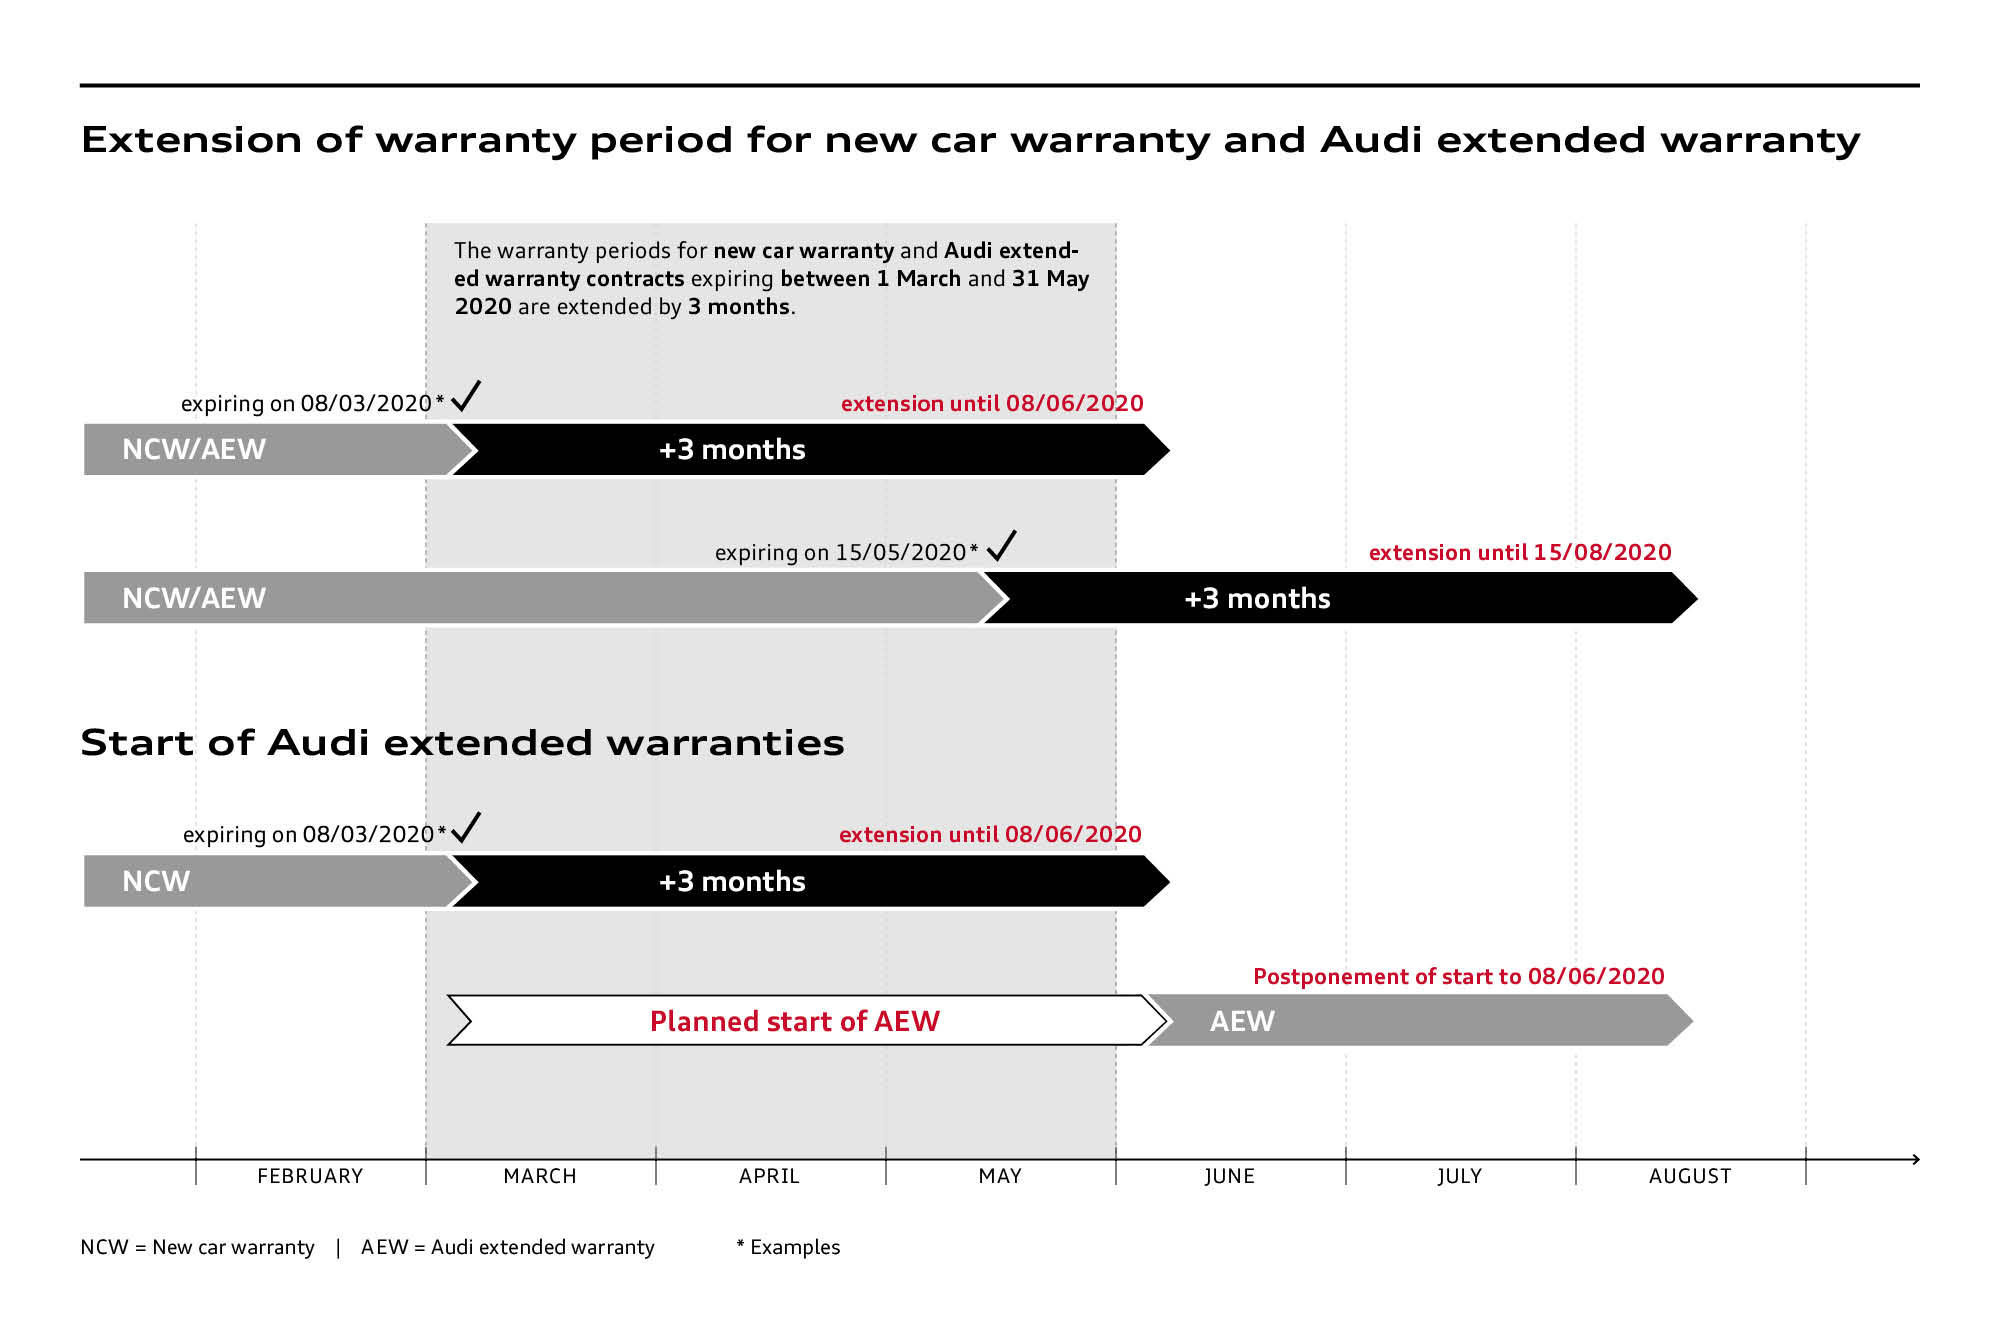 Audi extends new car warranty and extended warranty as a goodwill gesture - Image 2